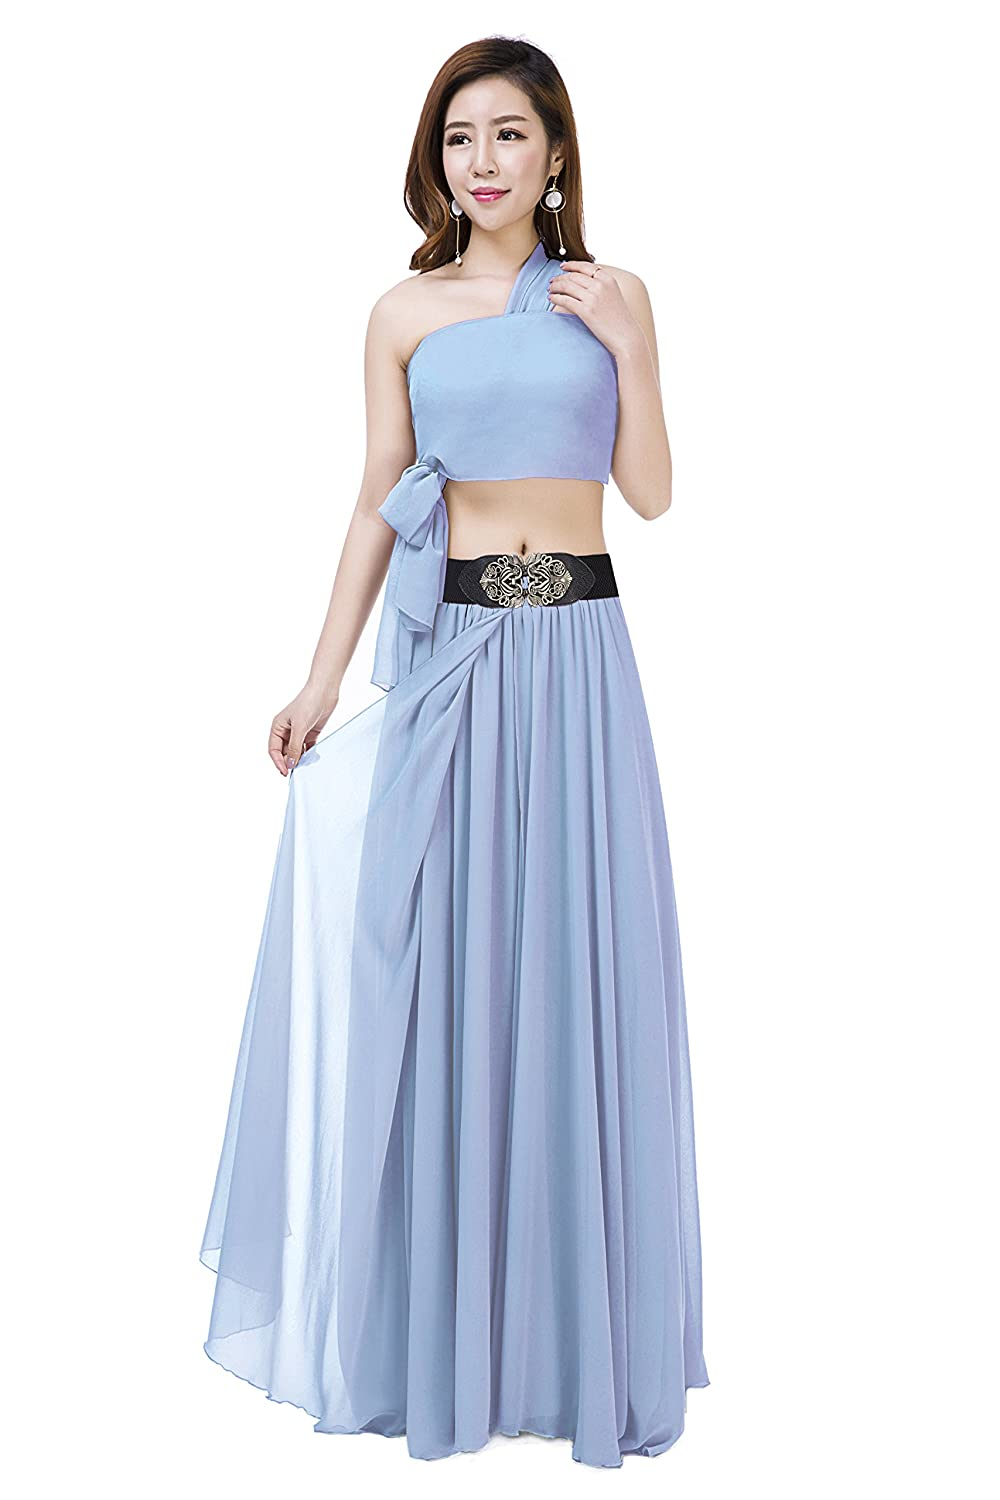 7ccd4a9a47 Heavy Long Skirts Online